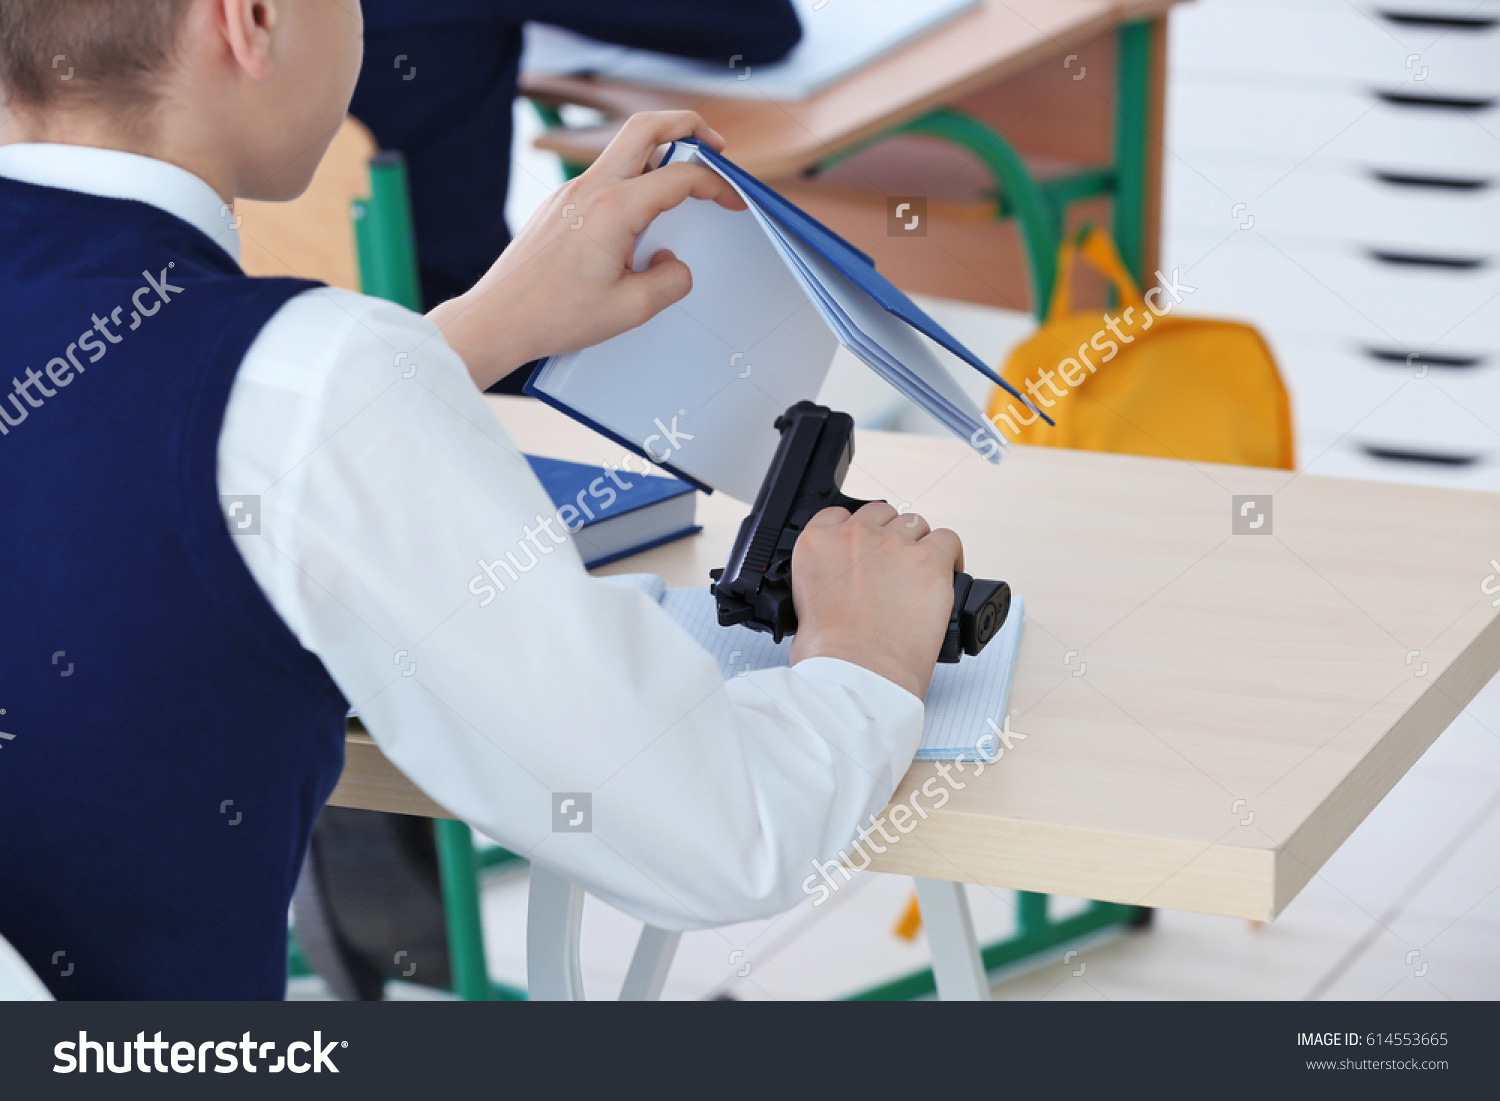 stock-photo-closeup-of-schoolboy-sitting-at-desk-in-classroom-and-holding-gun-614553665